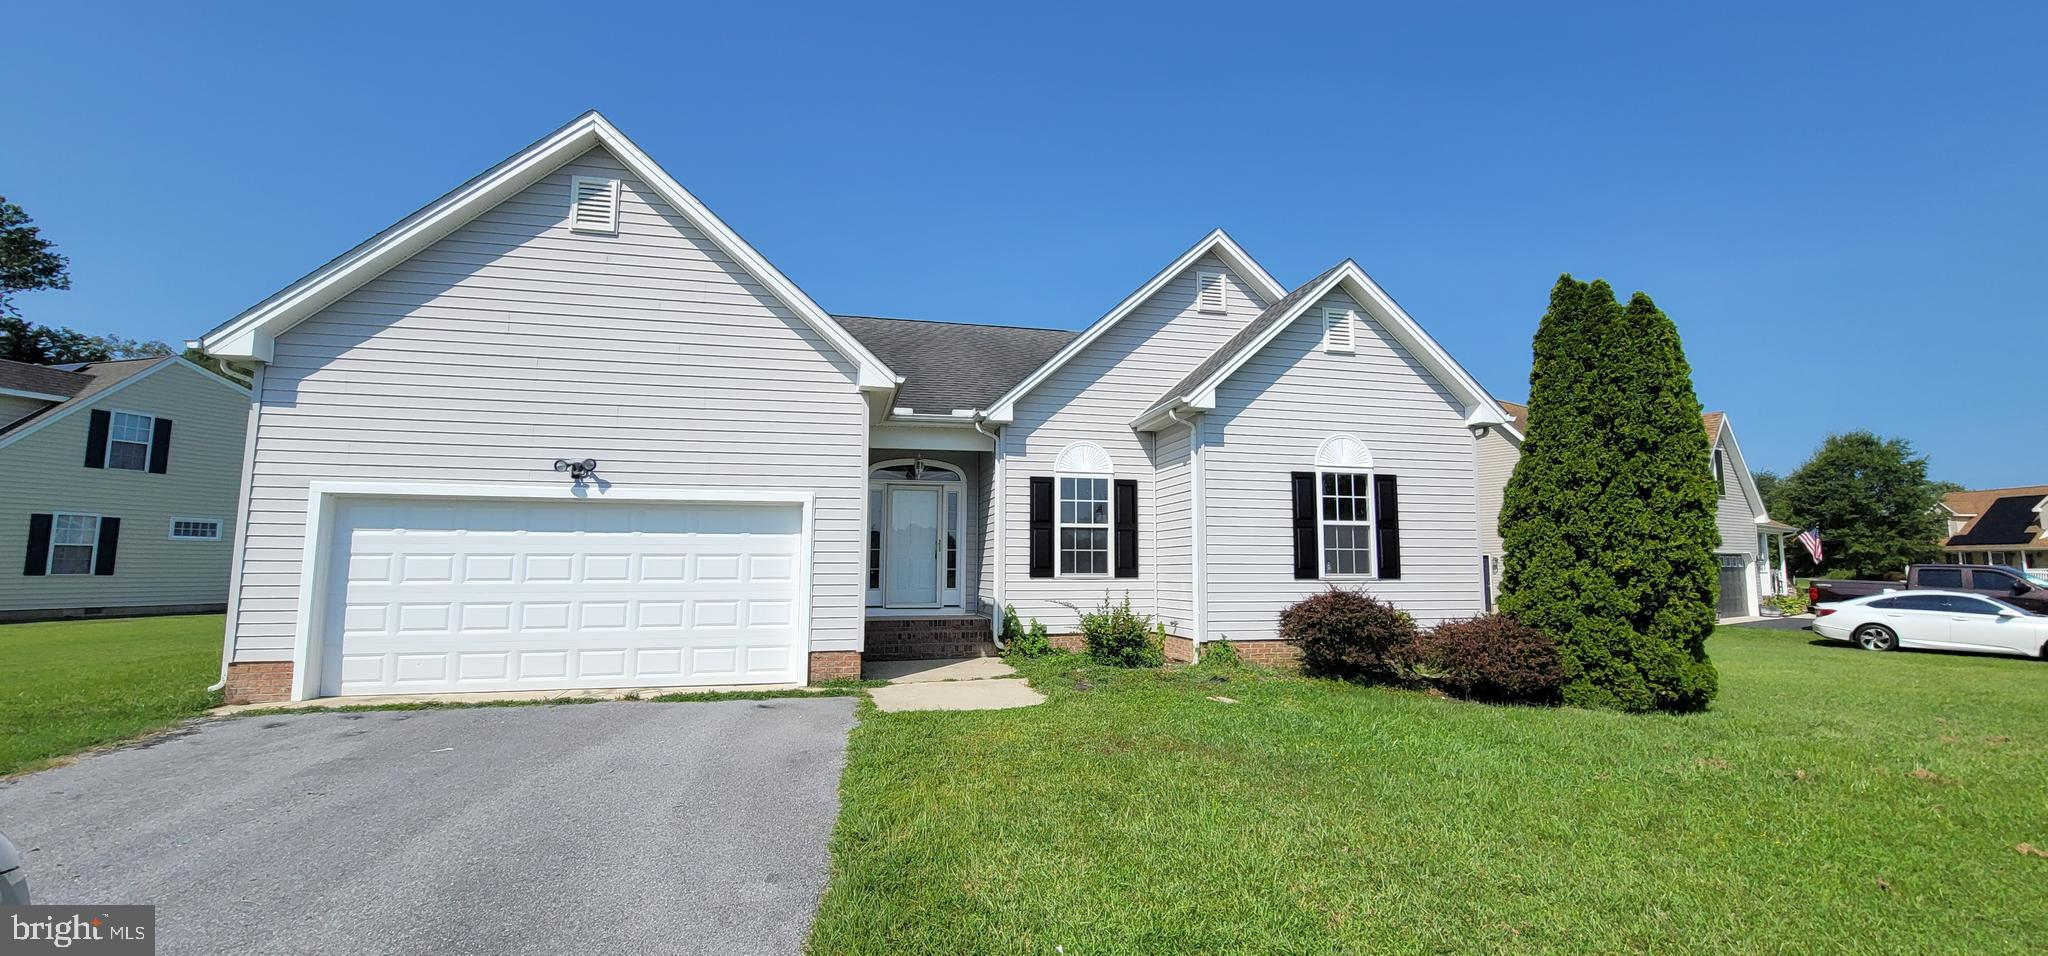 Come and check out this recently updated home in an extensive private lot.! Upon entry, you will be